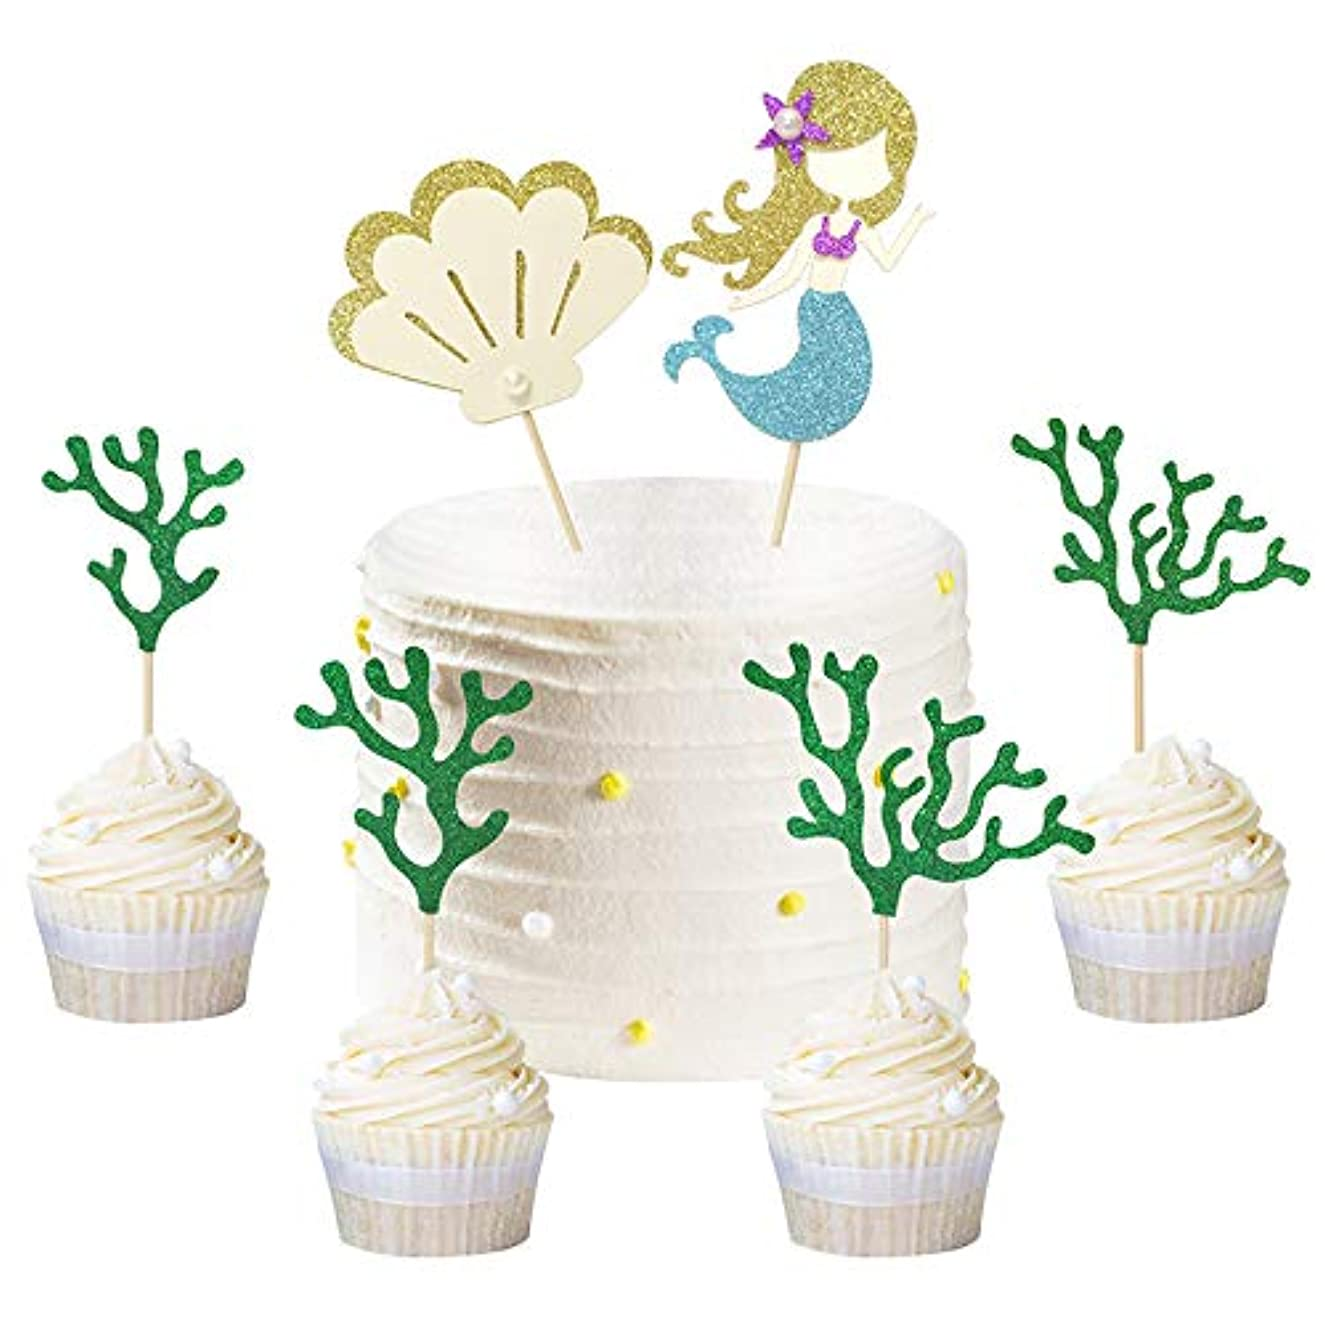 Mermaid Cupcake Toppers Shell Seaweed Donut Decor for Summer Ocean Beach Party